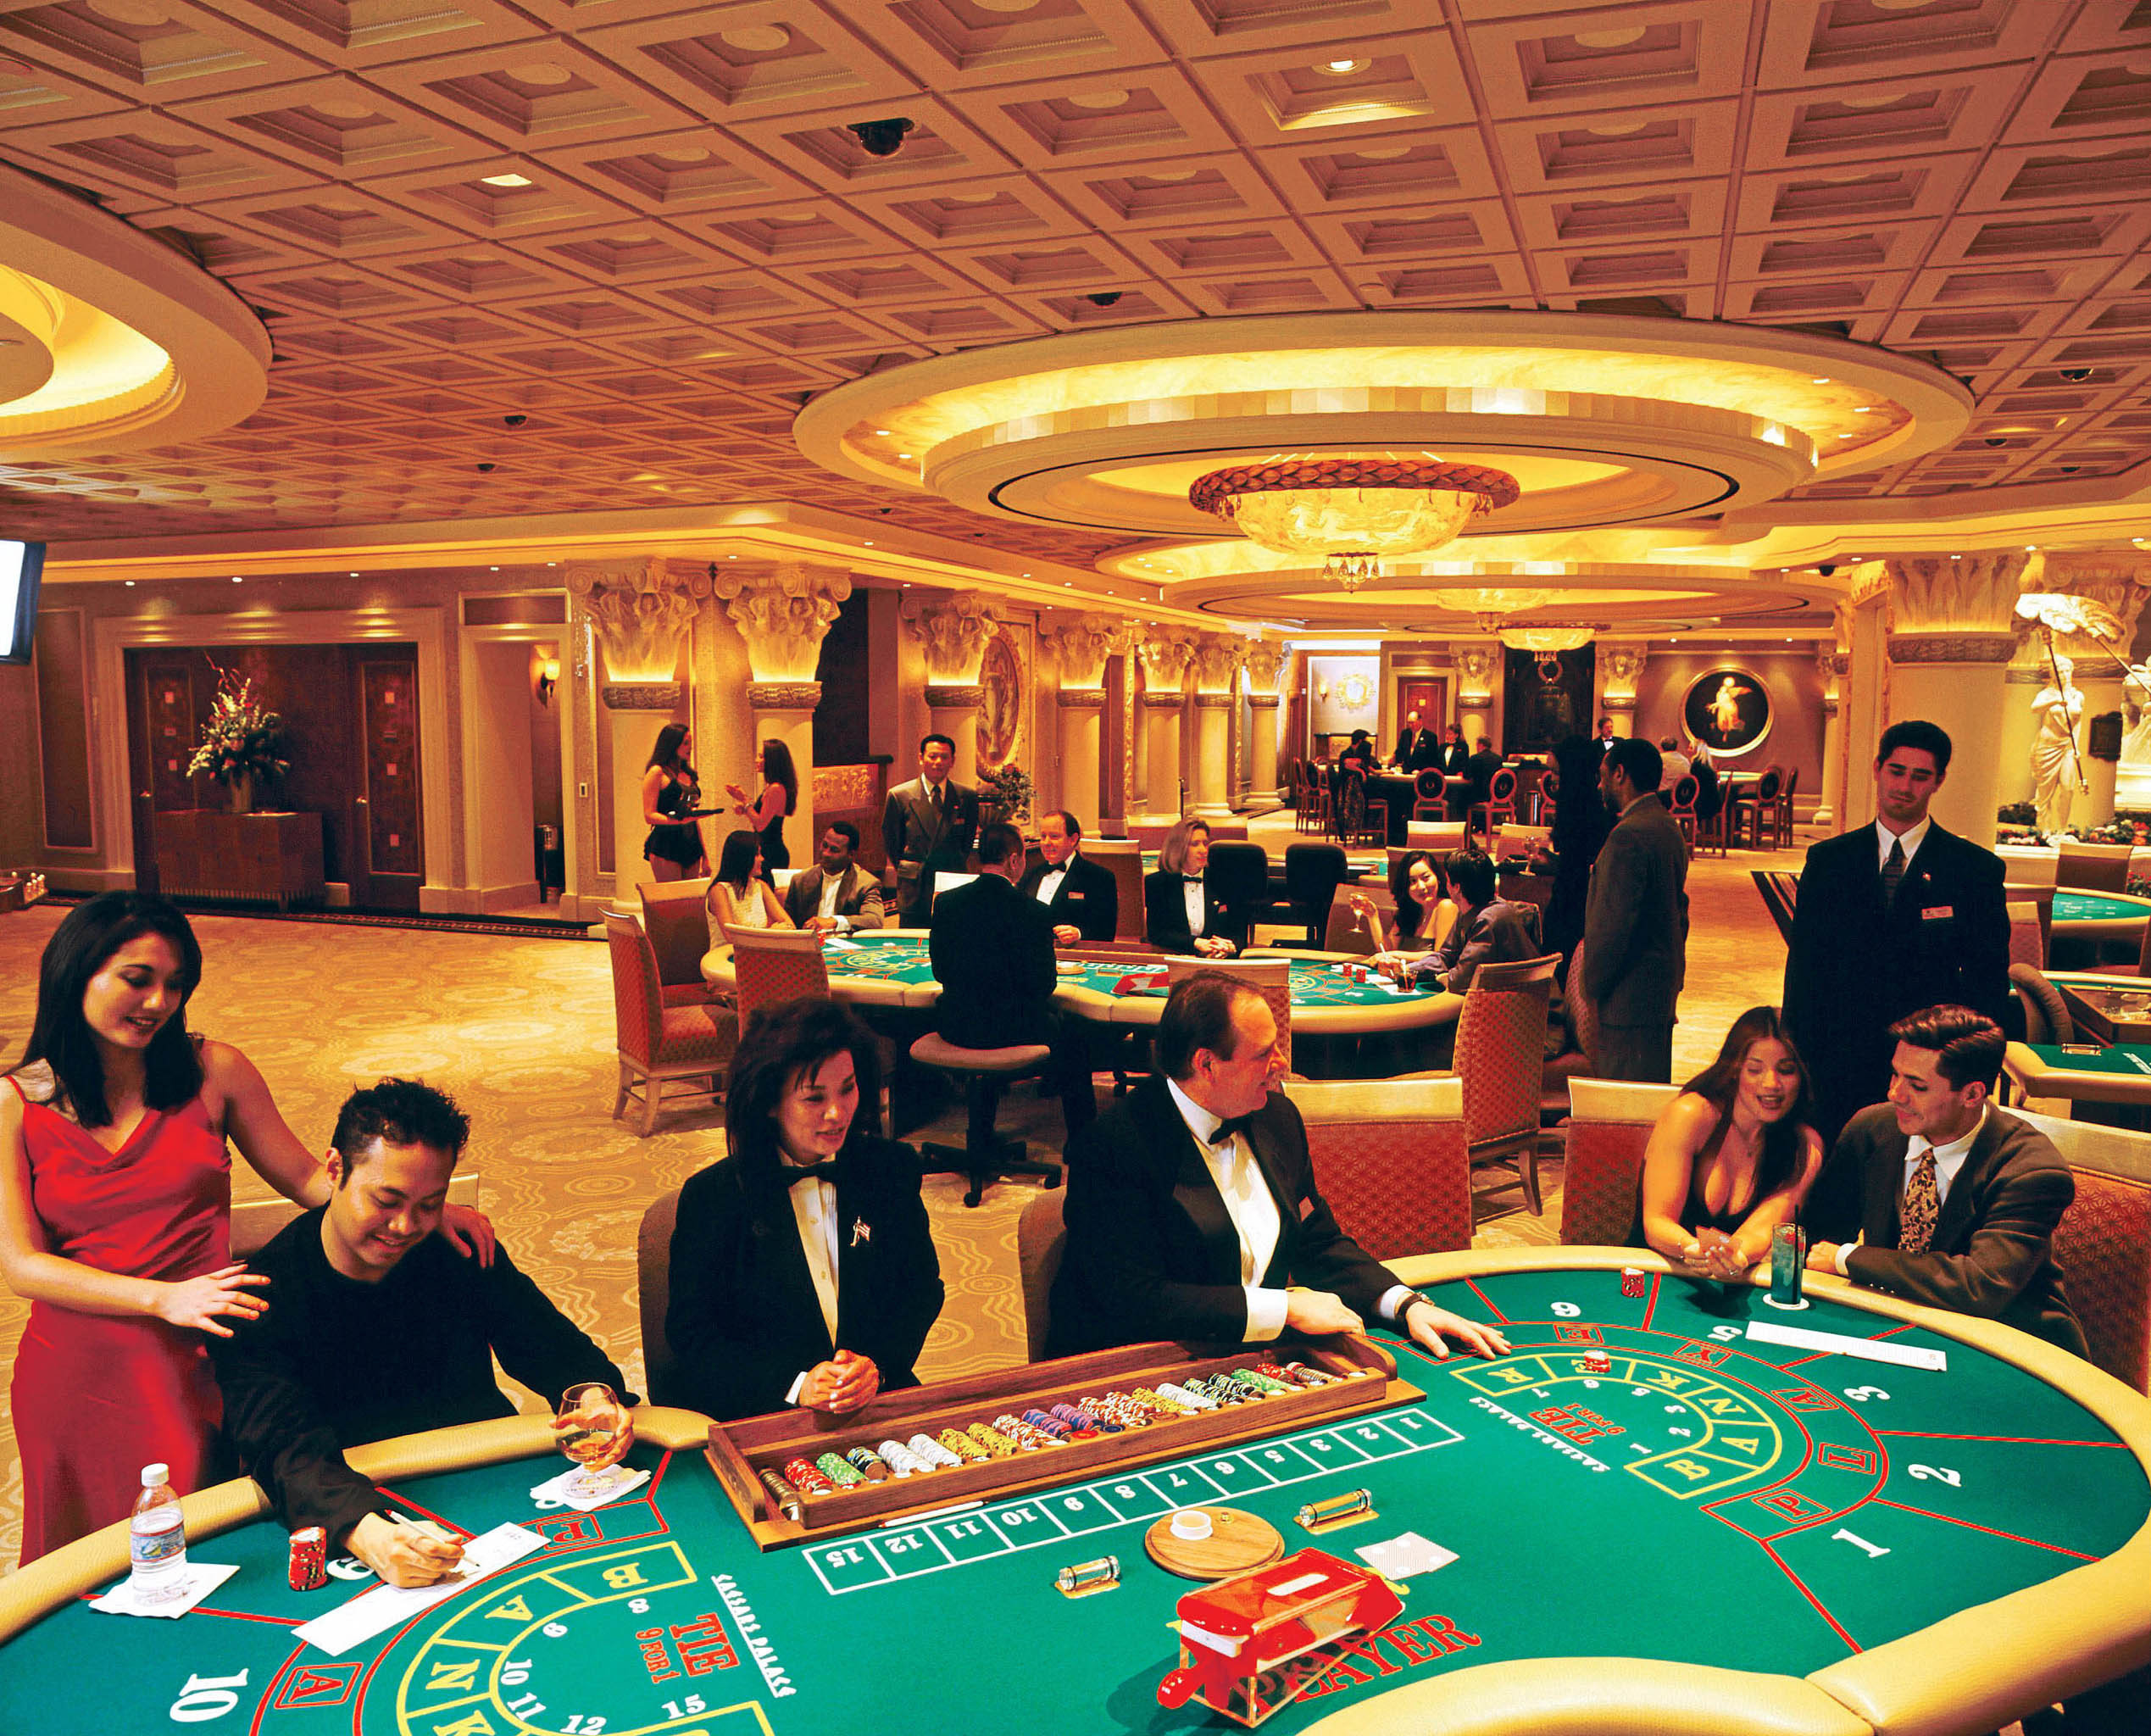 Casino City Entertainment Nightlife Party Play Resort scene gambling house building games